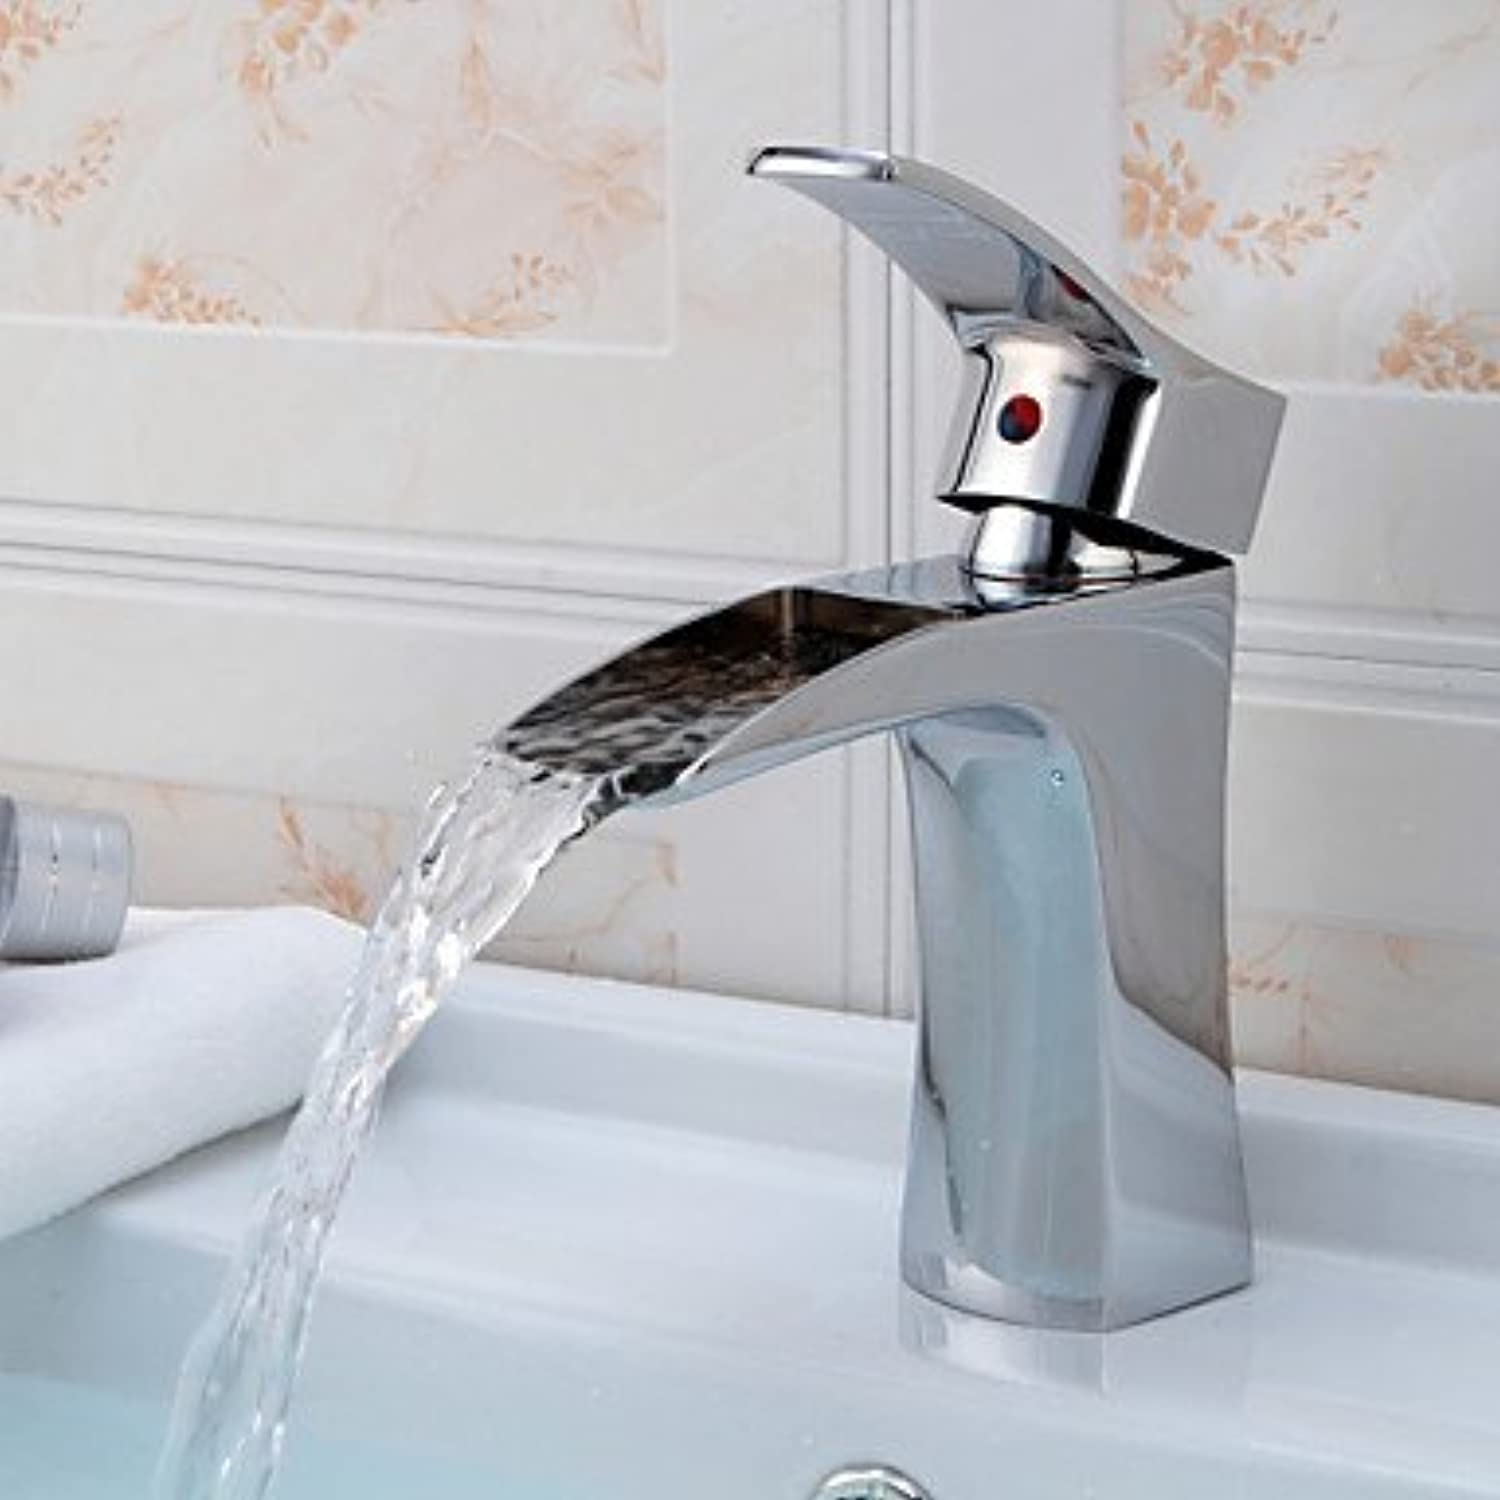 BiuTeFang Basin Tap Chrome Finish Waterfall Bathroom Sink Faucet Bathroom Faucet Basin Mixer Tap